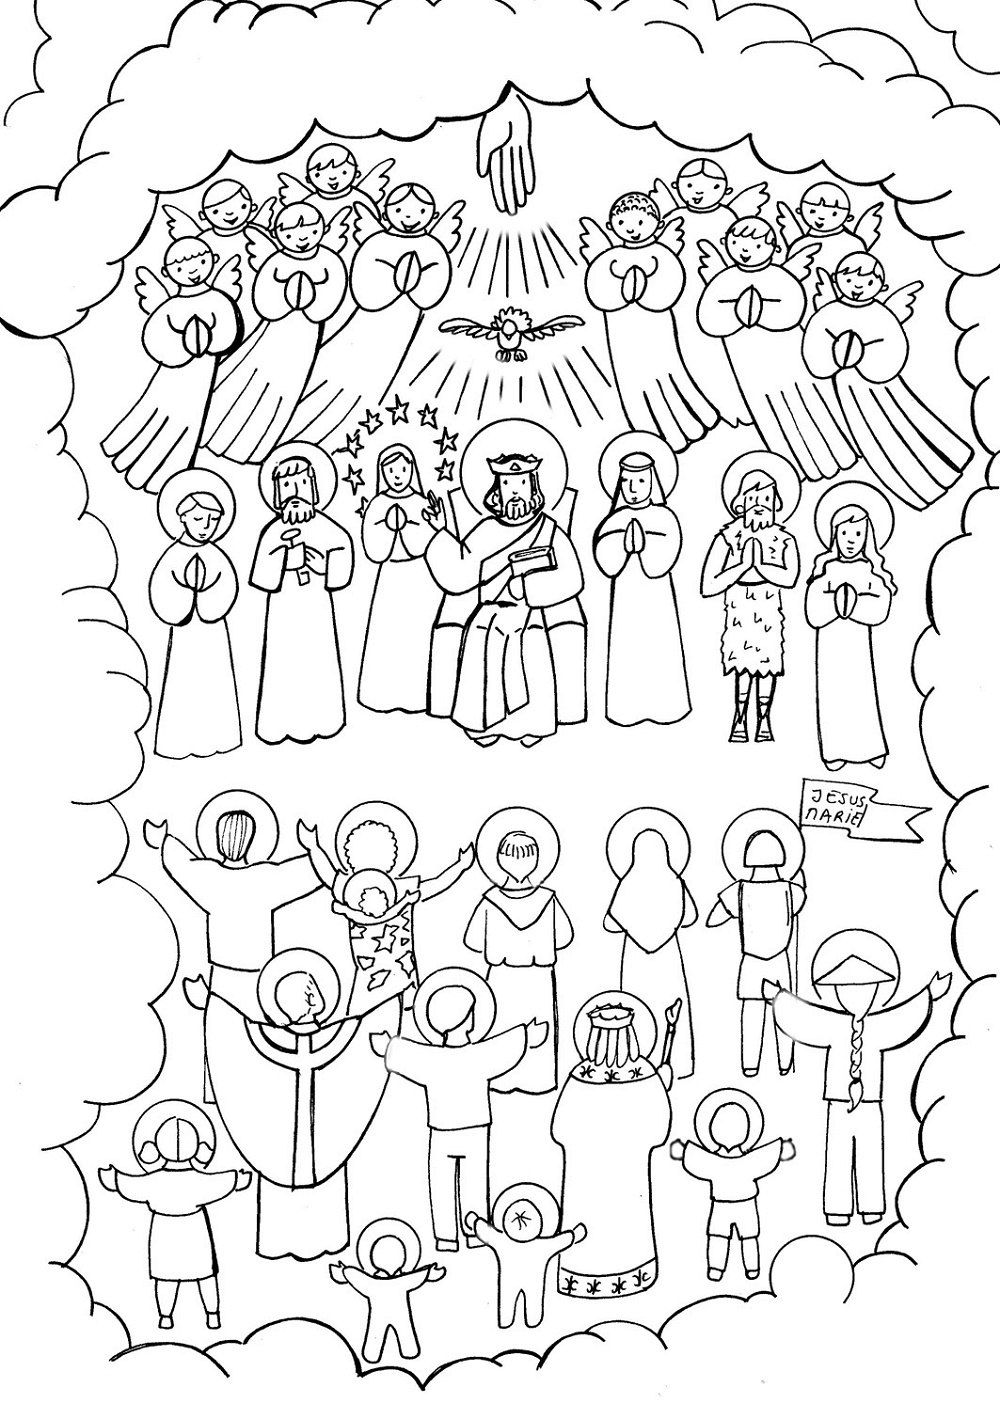 All Saints Day Coloring Pages K5 Worksheets All Saints Day Catholic Coloring Saint Coloring